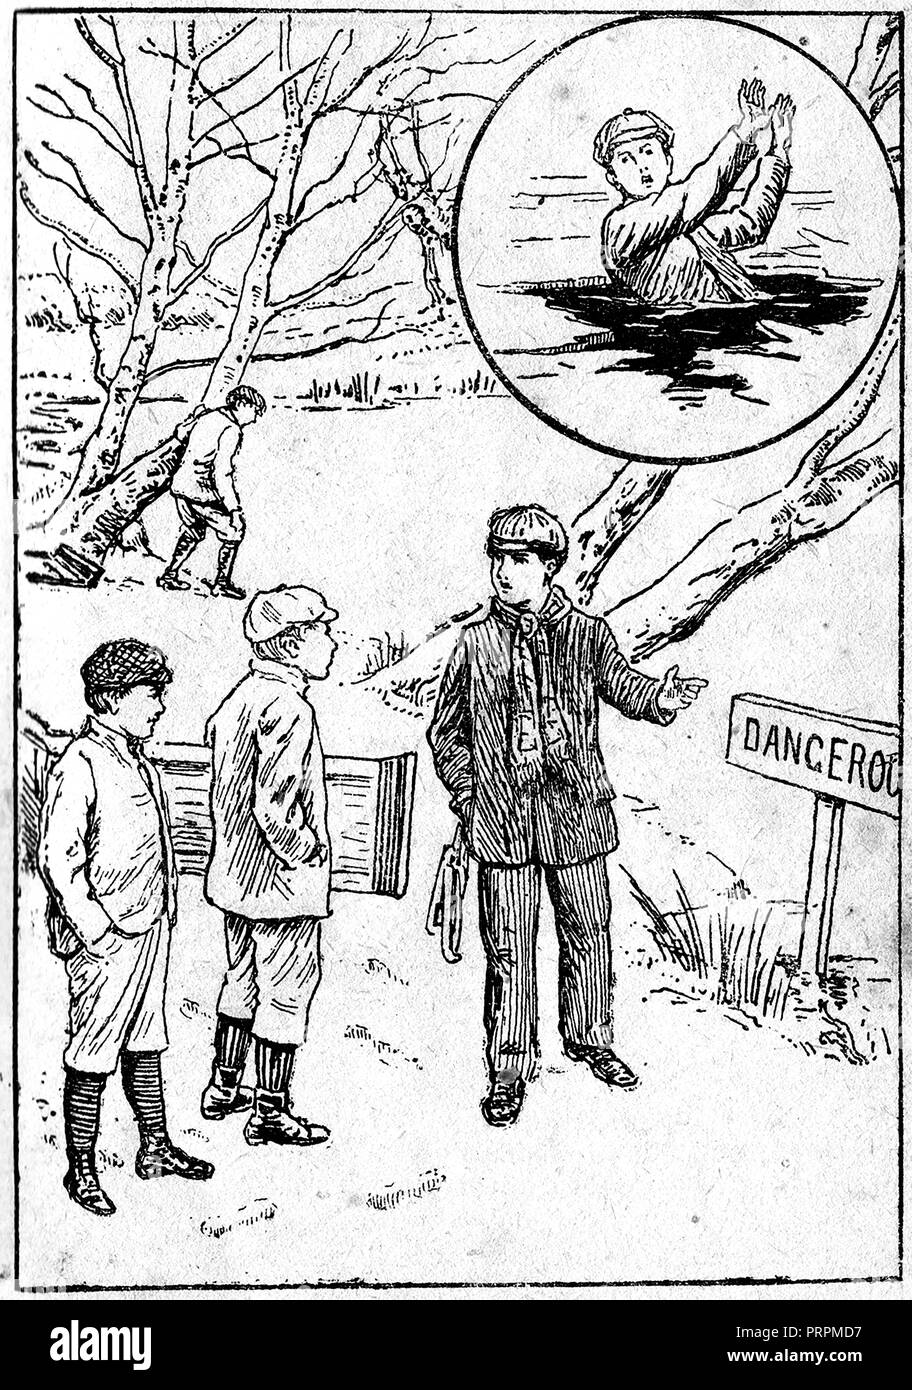 early 1900's's illustration of Ernest Caulder aged 8, and brother Alfred   prior to their death by drowning, despite efforts of local hero Daniel Pusey who is seen here warning them of the dangers prior to the incident    at Burnham Beeches, Bucks - Stock Image